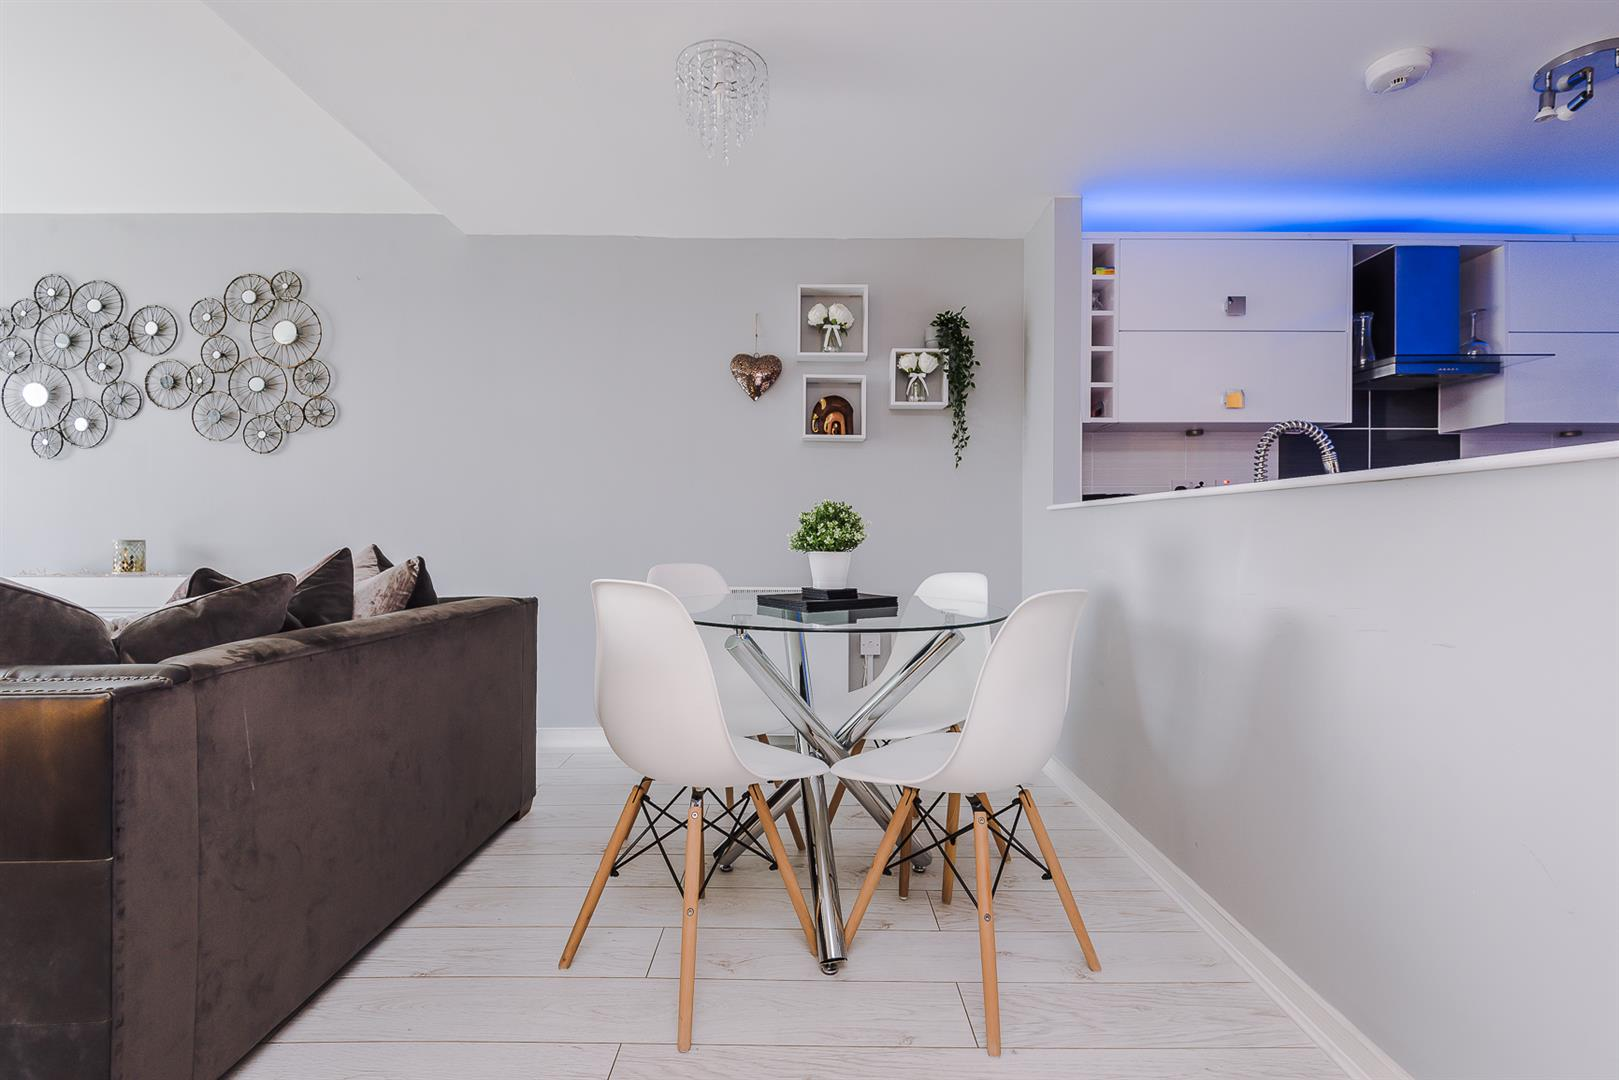 2 Bedroom Apartment For Sale Image 5